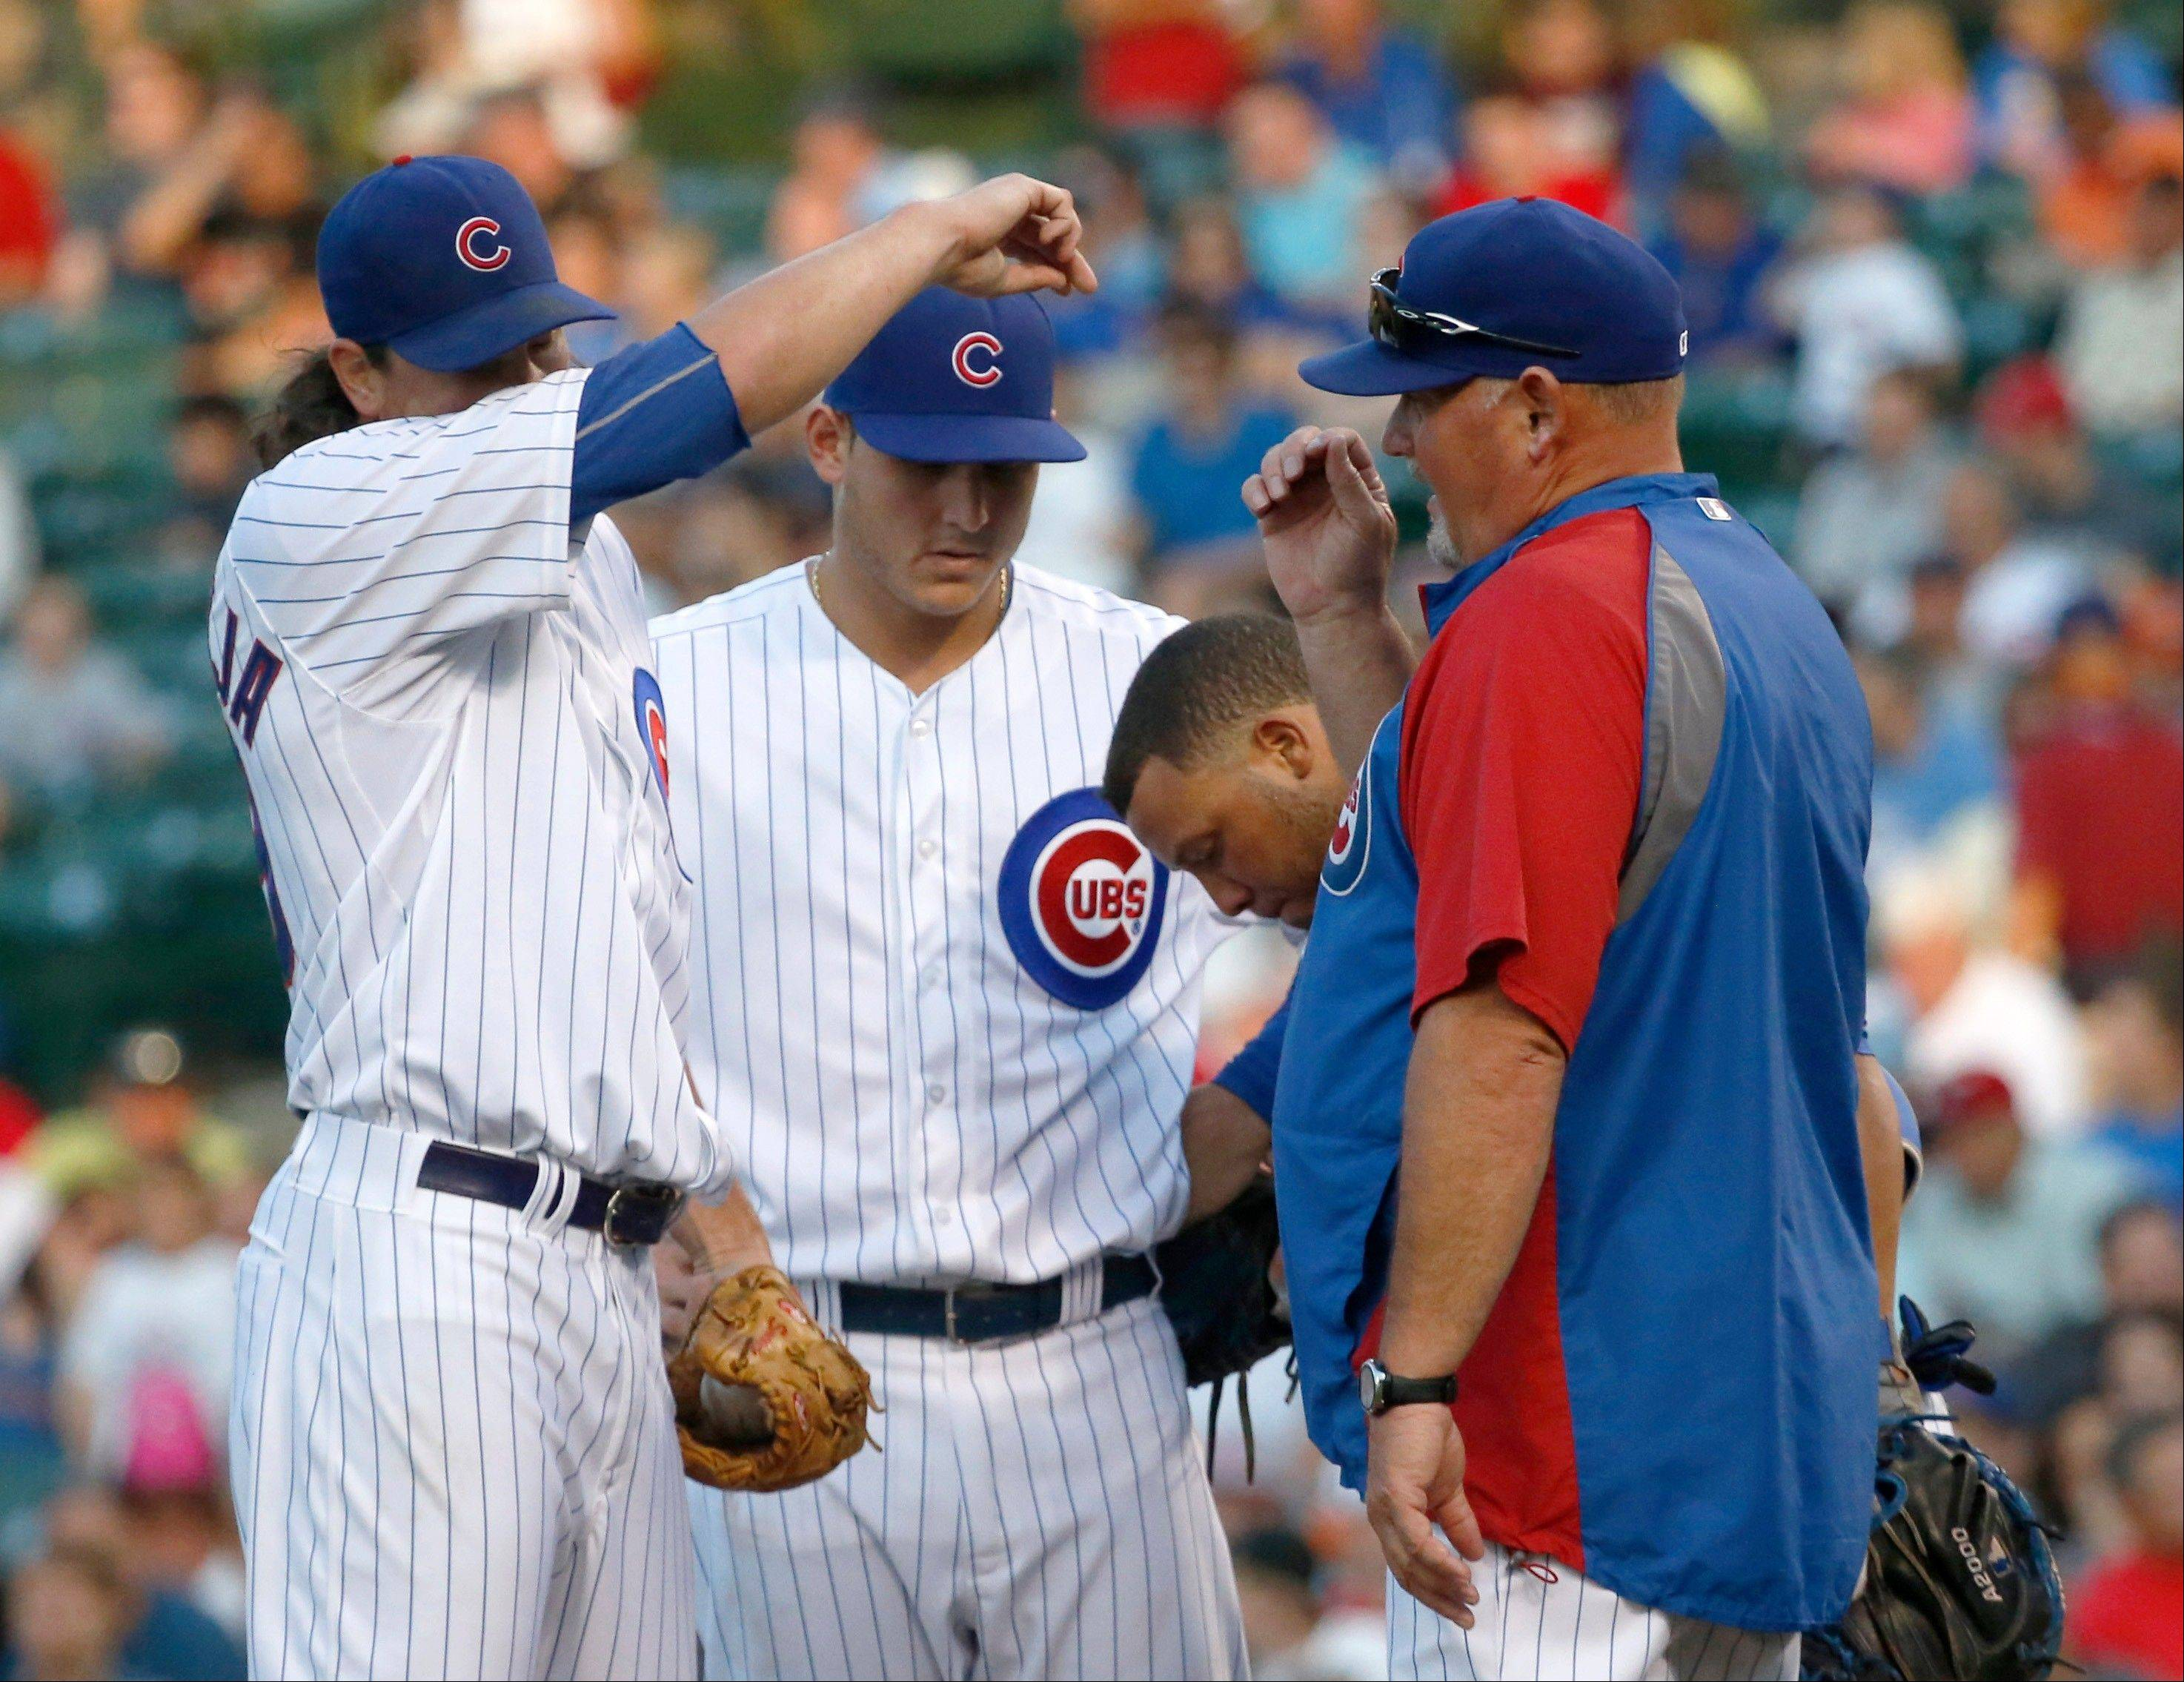 Cubs starting pitcher Jeff Samardzija, wiping the sweat from his face as he listens to pitching coach Chris Bosio in the first inning Wednesday night, allowed 9 runs on 9 hits, 4 of them home runs.